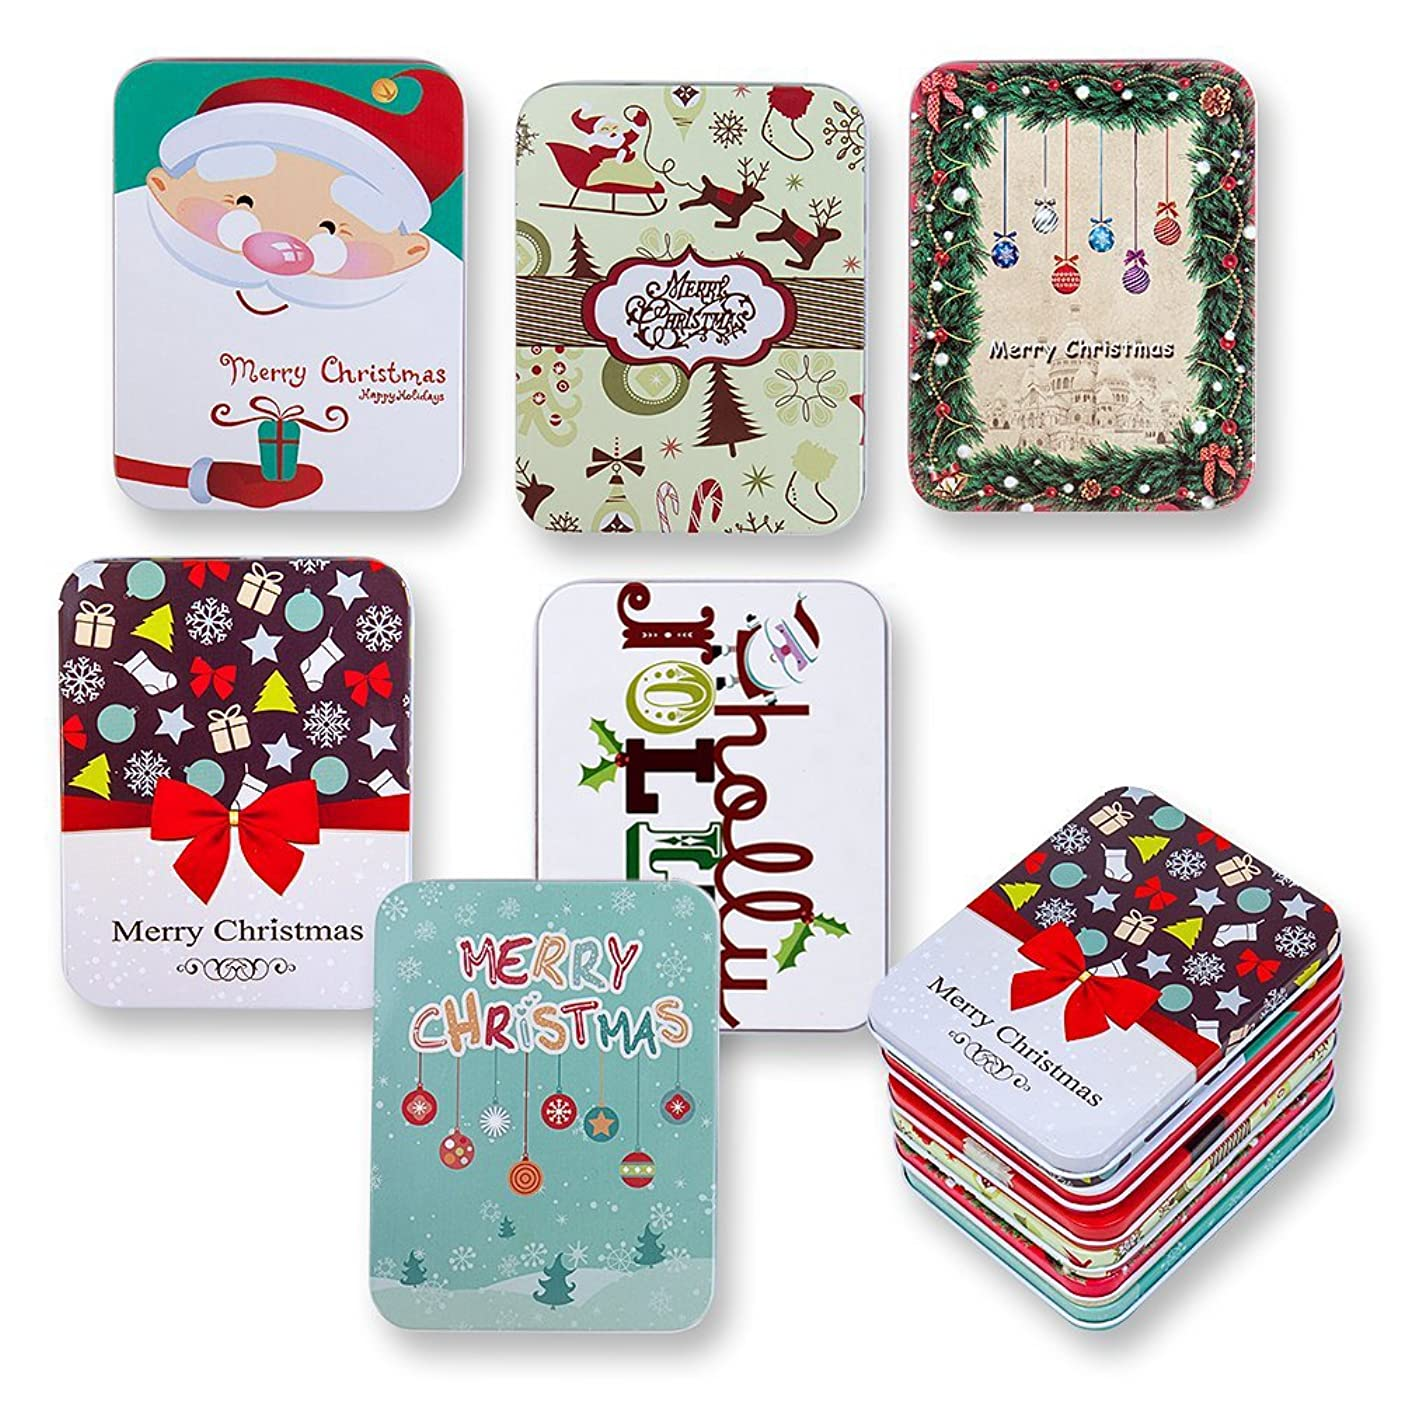 6 Pack Christmas Holiday Gift Card Tin Holders Box Set by Gift Boutique